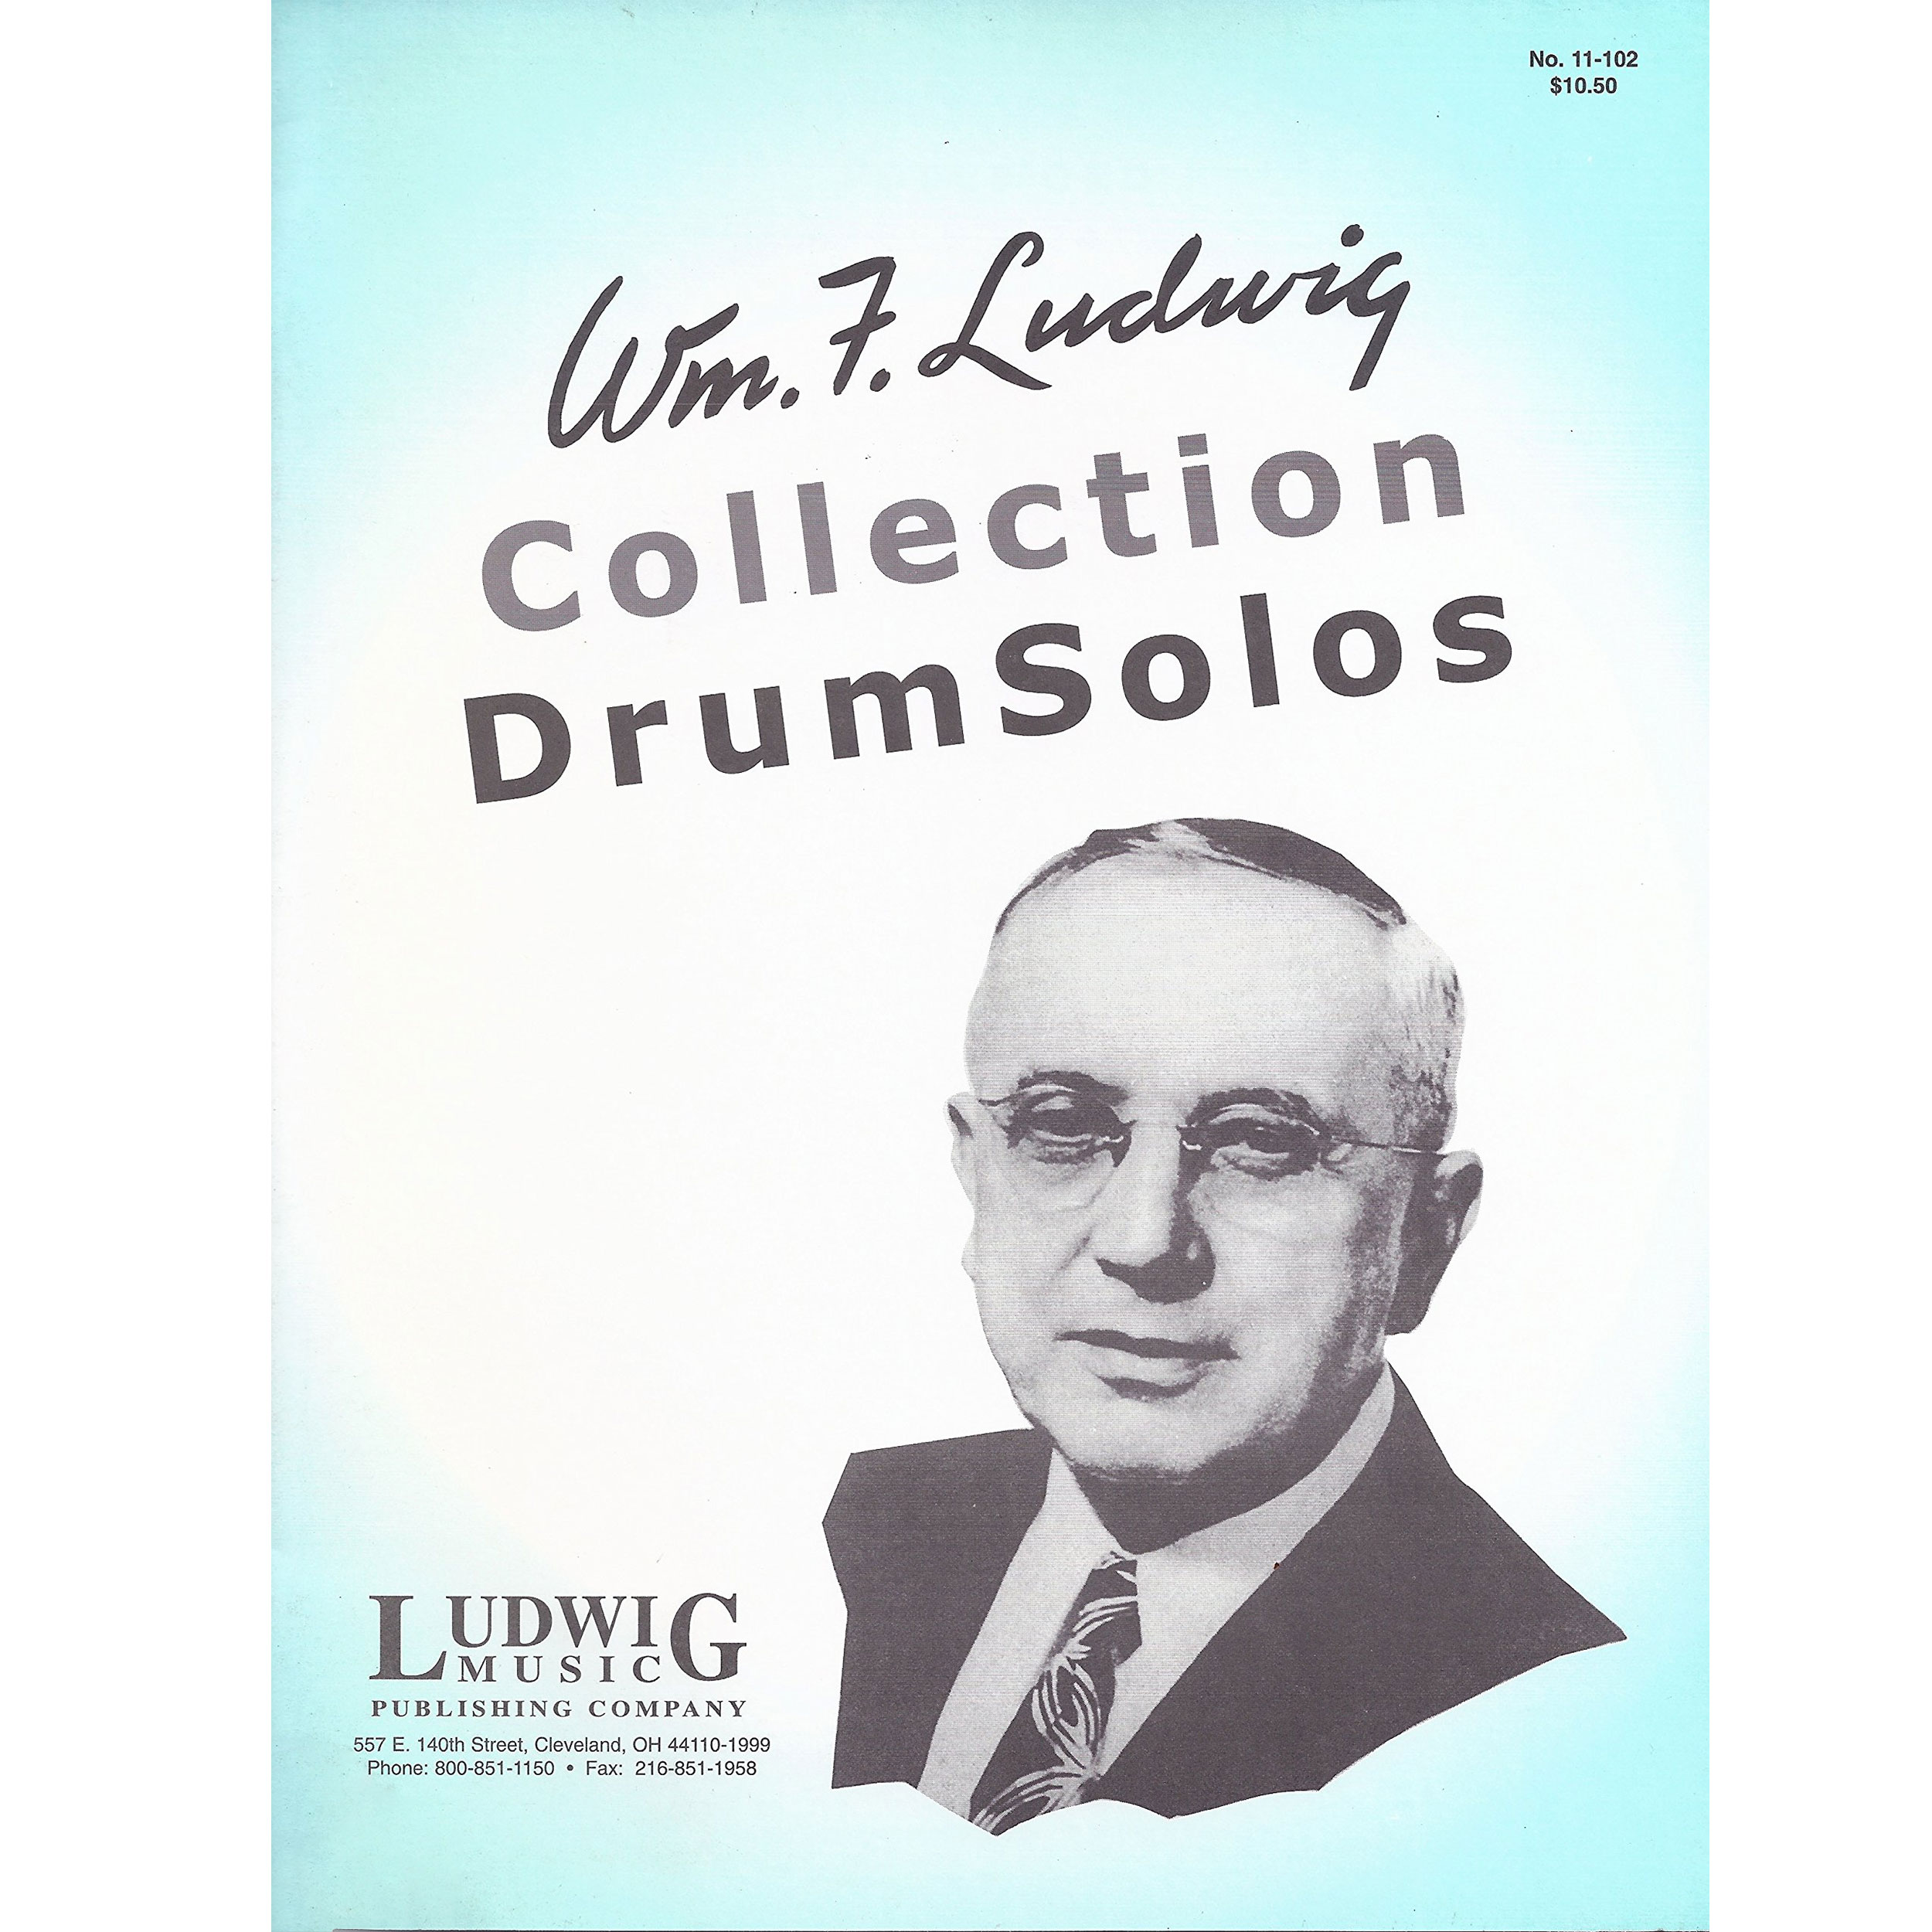 Collection of Drum Solos by William F. Ludwig